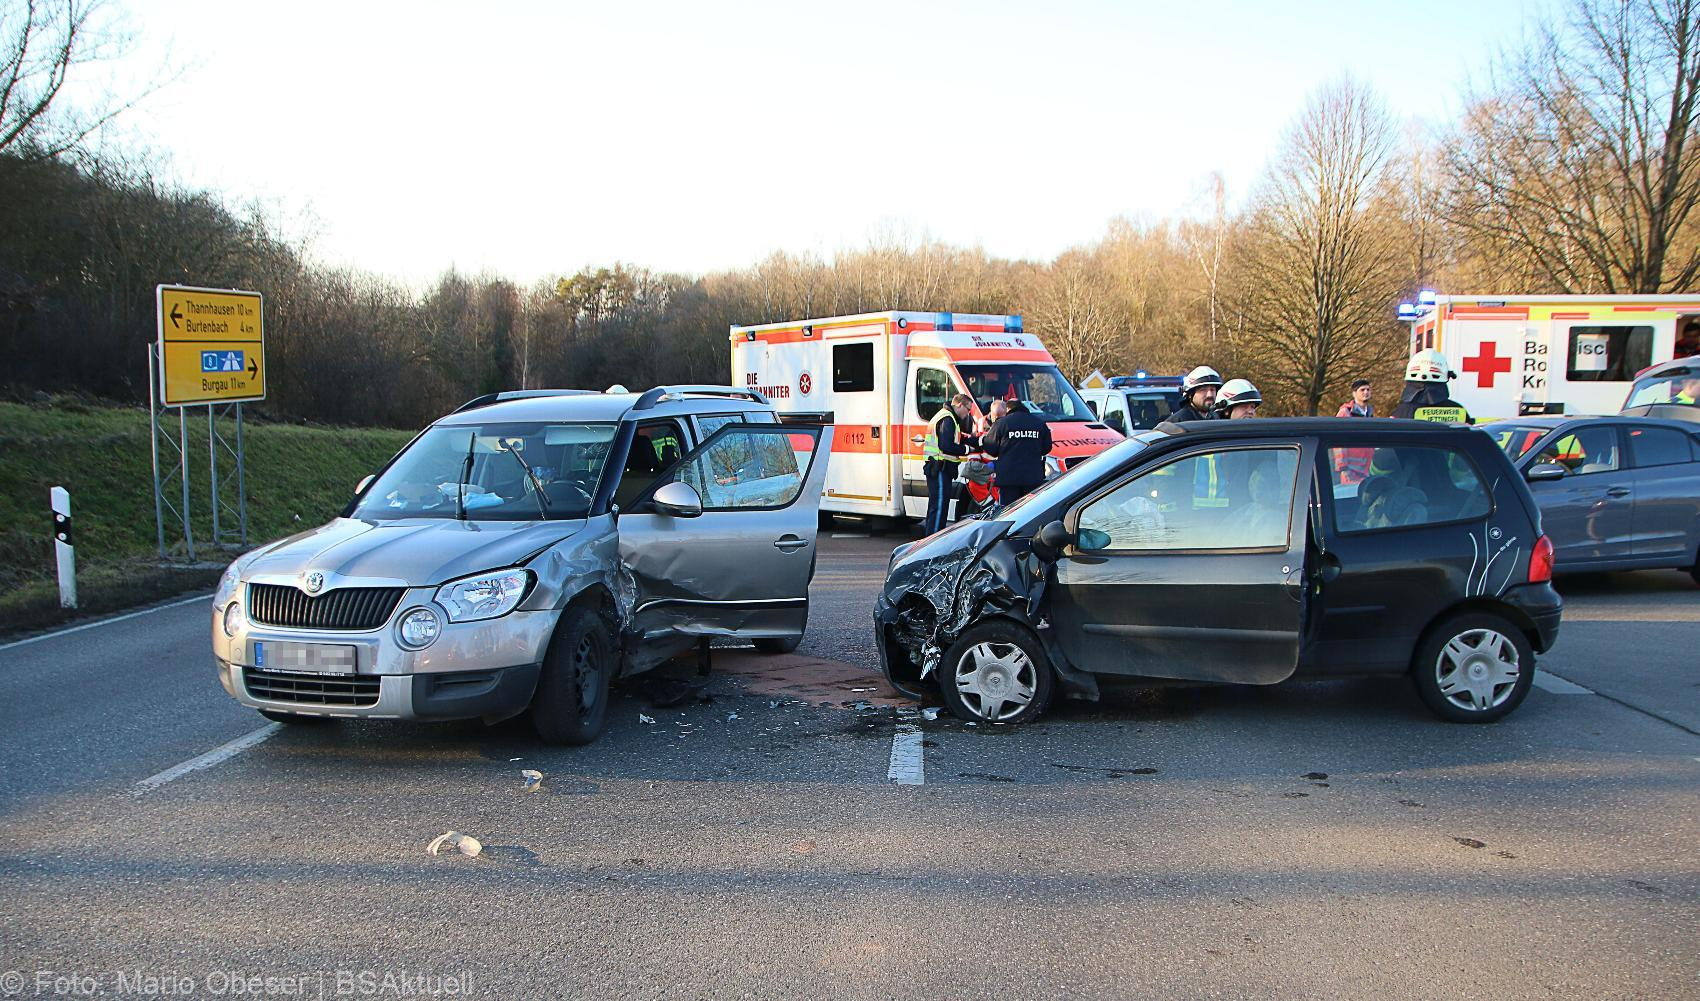 Unfall St2025 Umgejung Jettingen 16012020 5